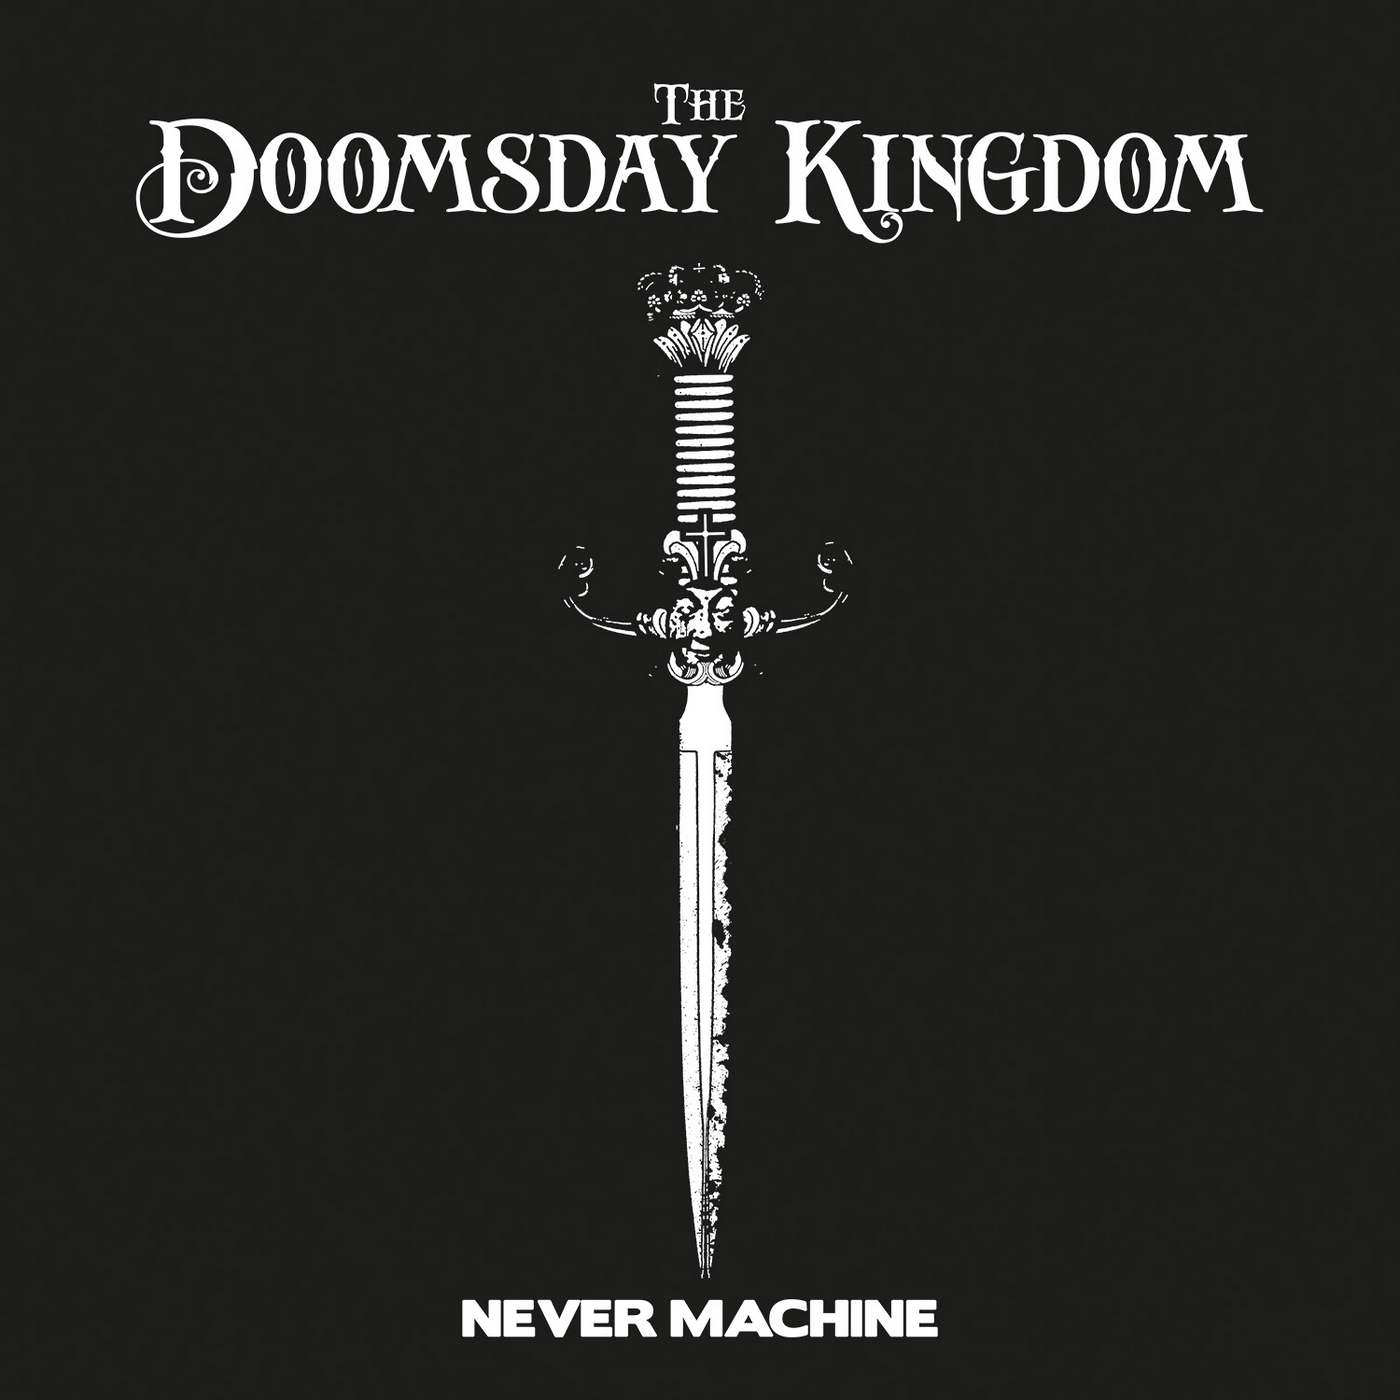 The Doomsday Kingdom: Never Machine (2016) Book Cover